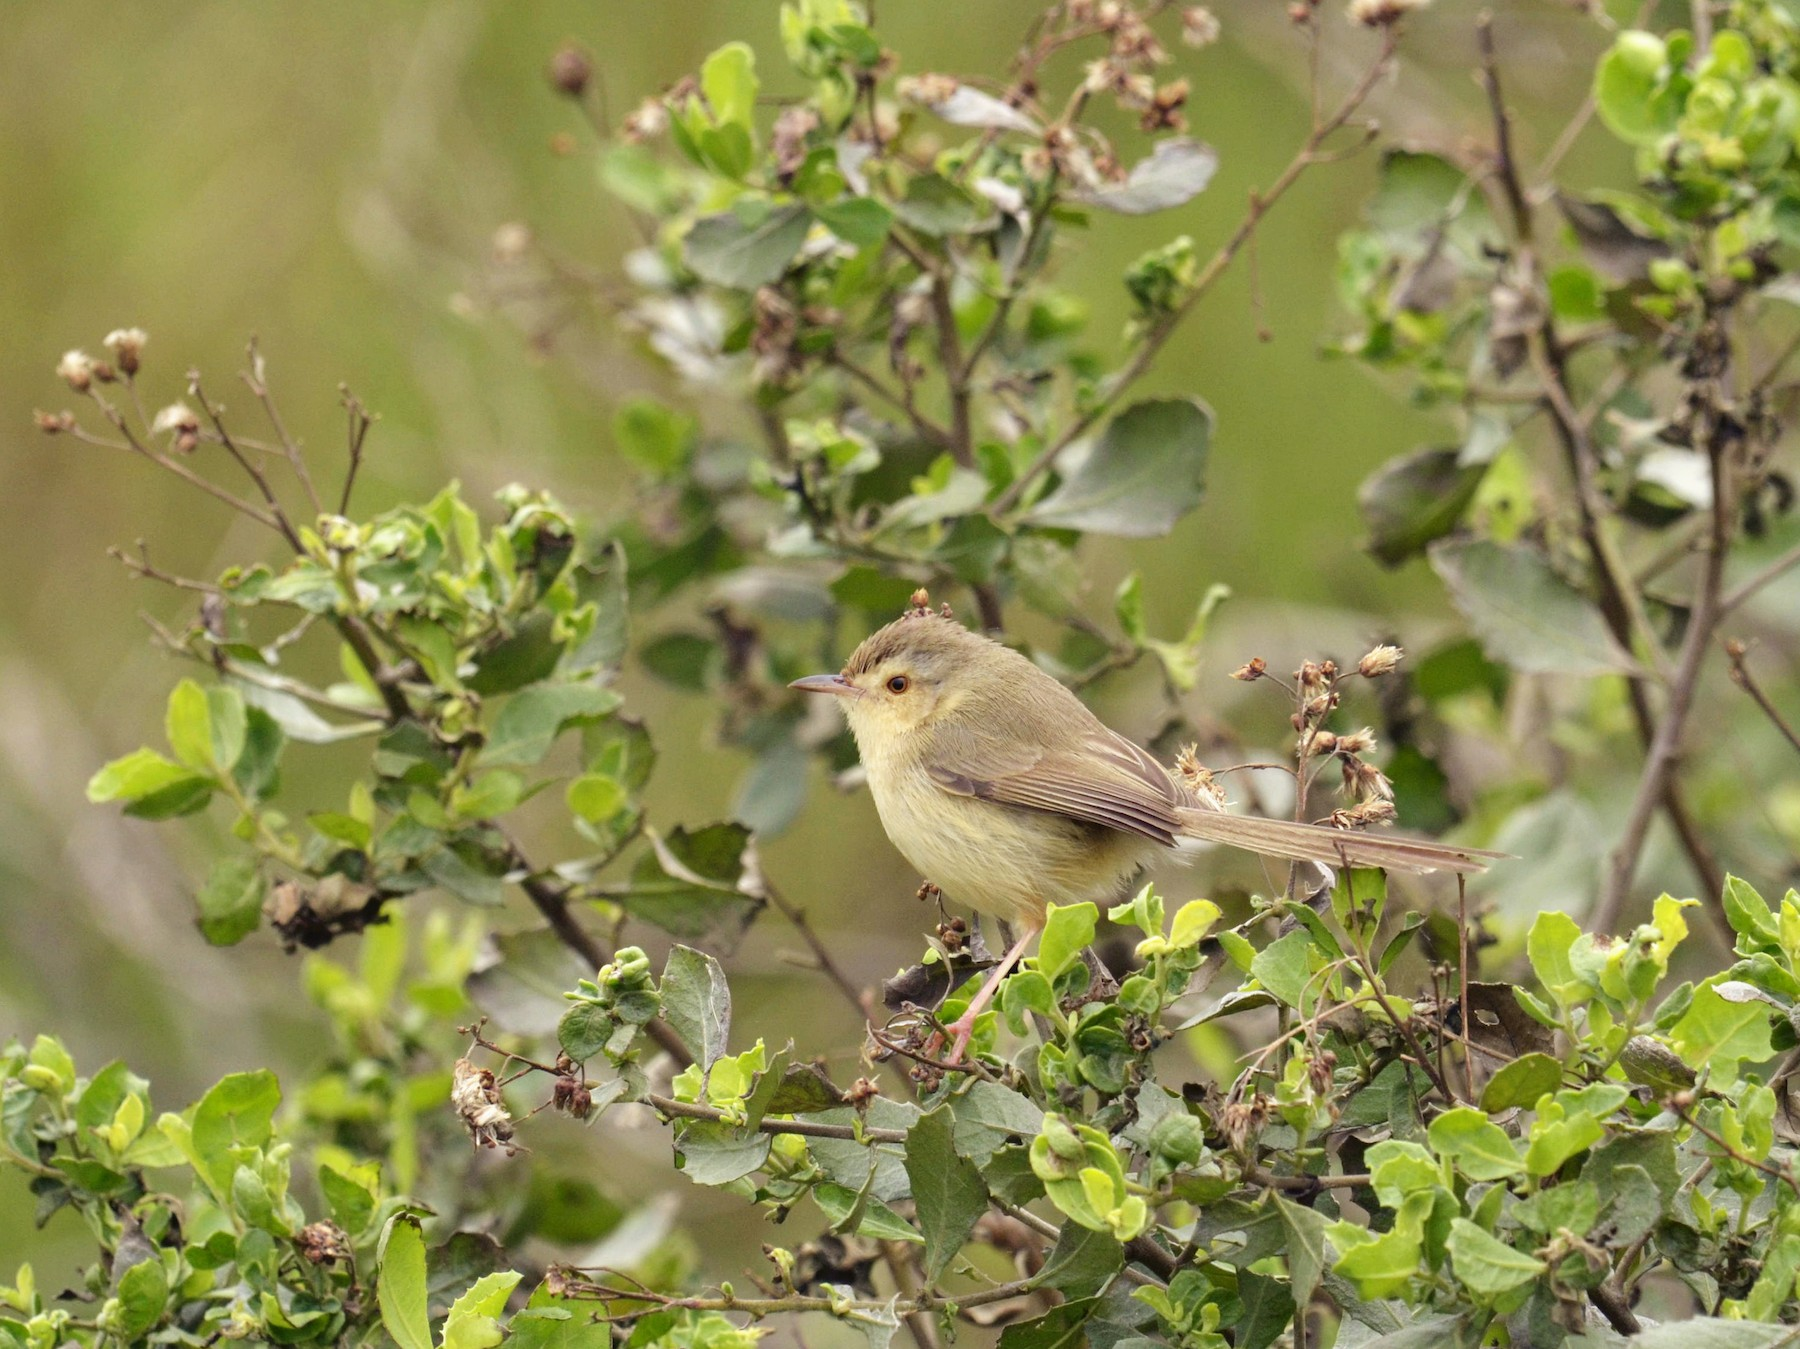 Yellow-bellied Prinia - 智偉(Chih-Wei) 張(Chang)